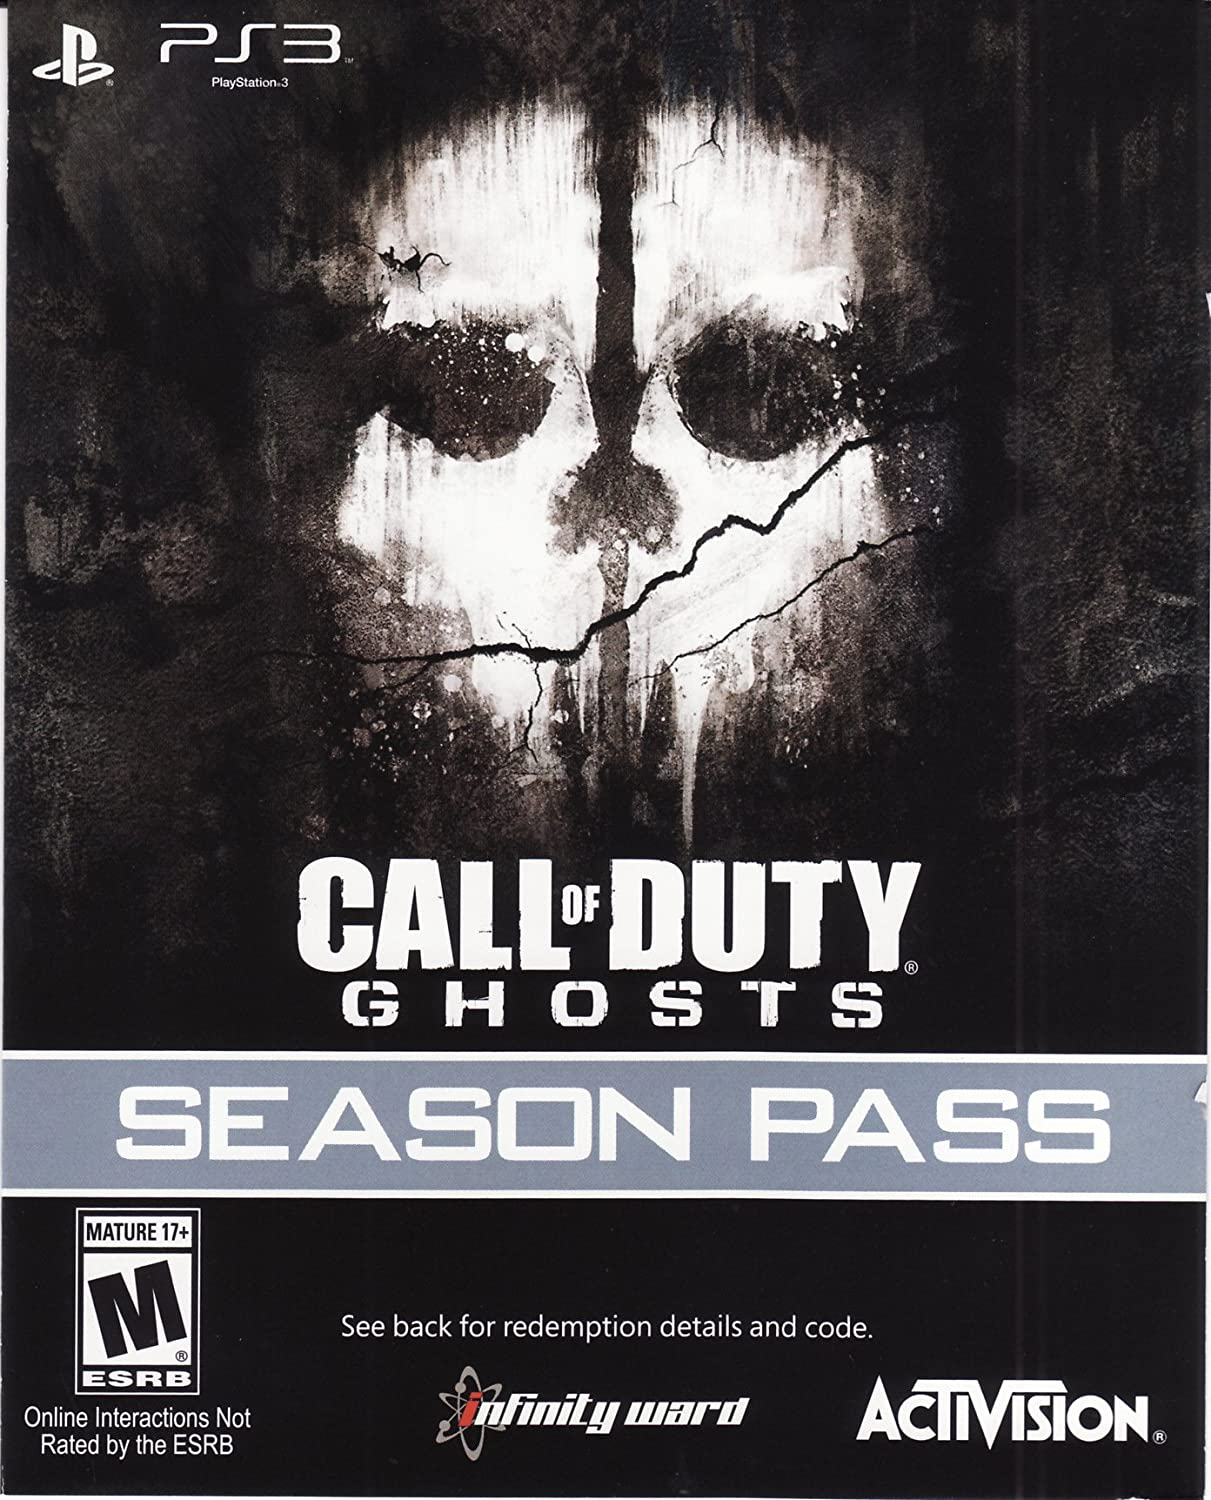 Call of Duty Ghosts Season Pass DLC Code Card - Playstation 3 Activision